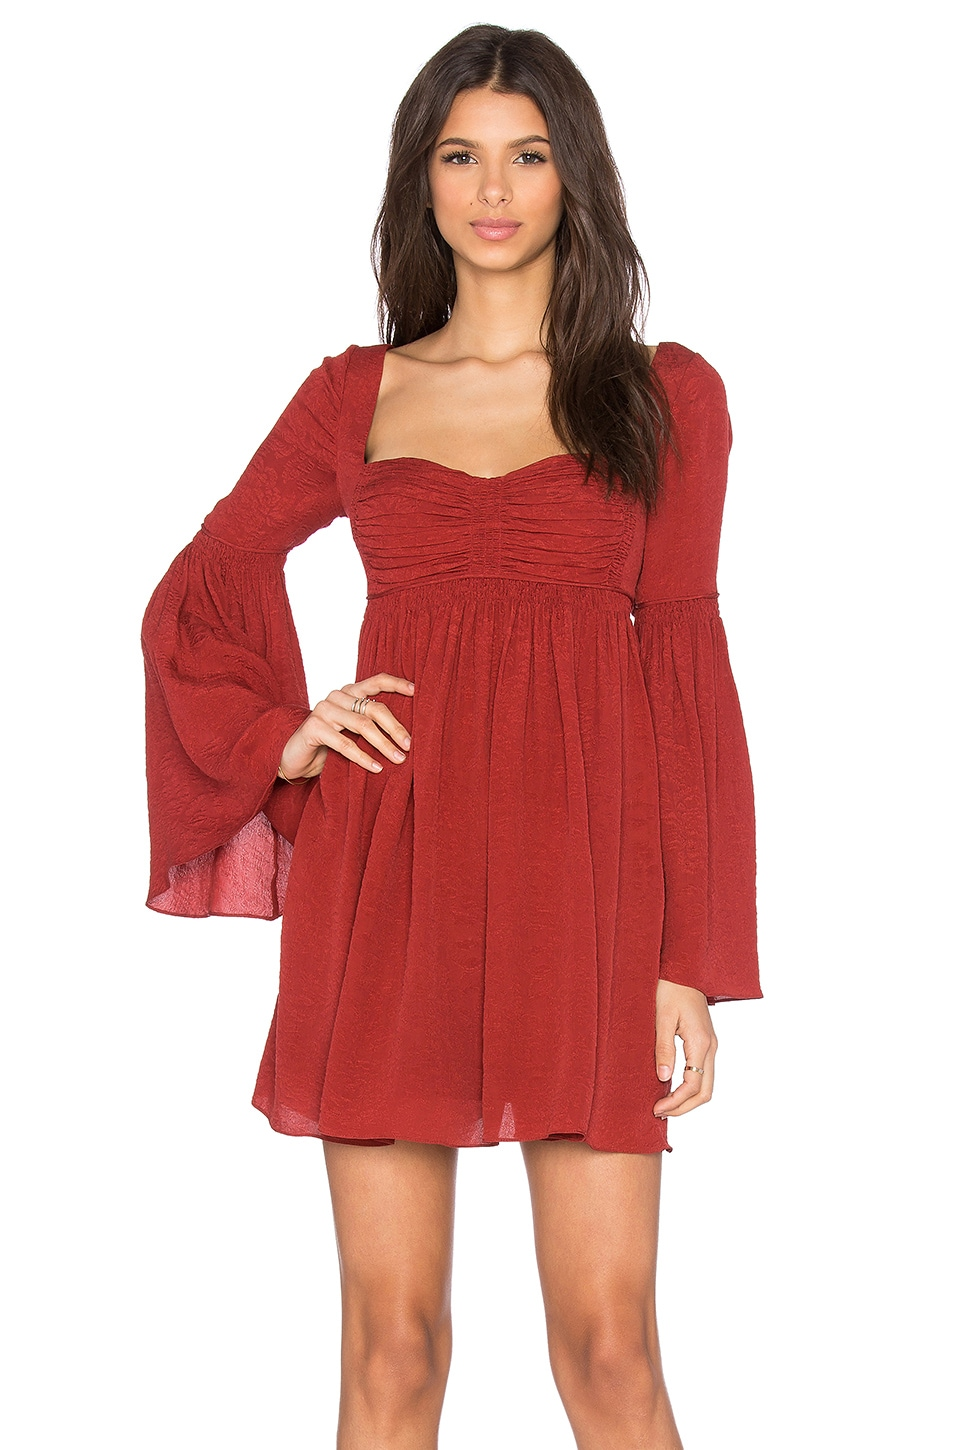 Free People Duchess Party Dress in Deep Red - REVOLVE